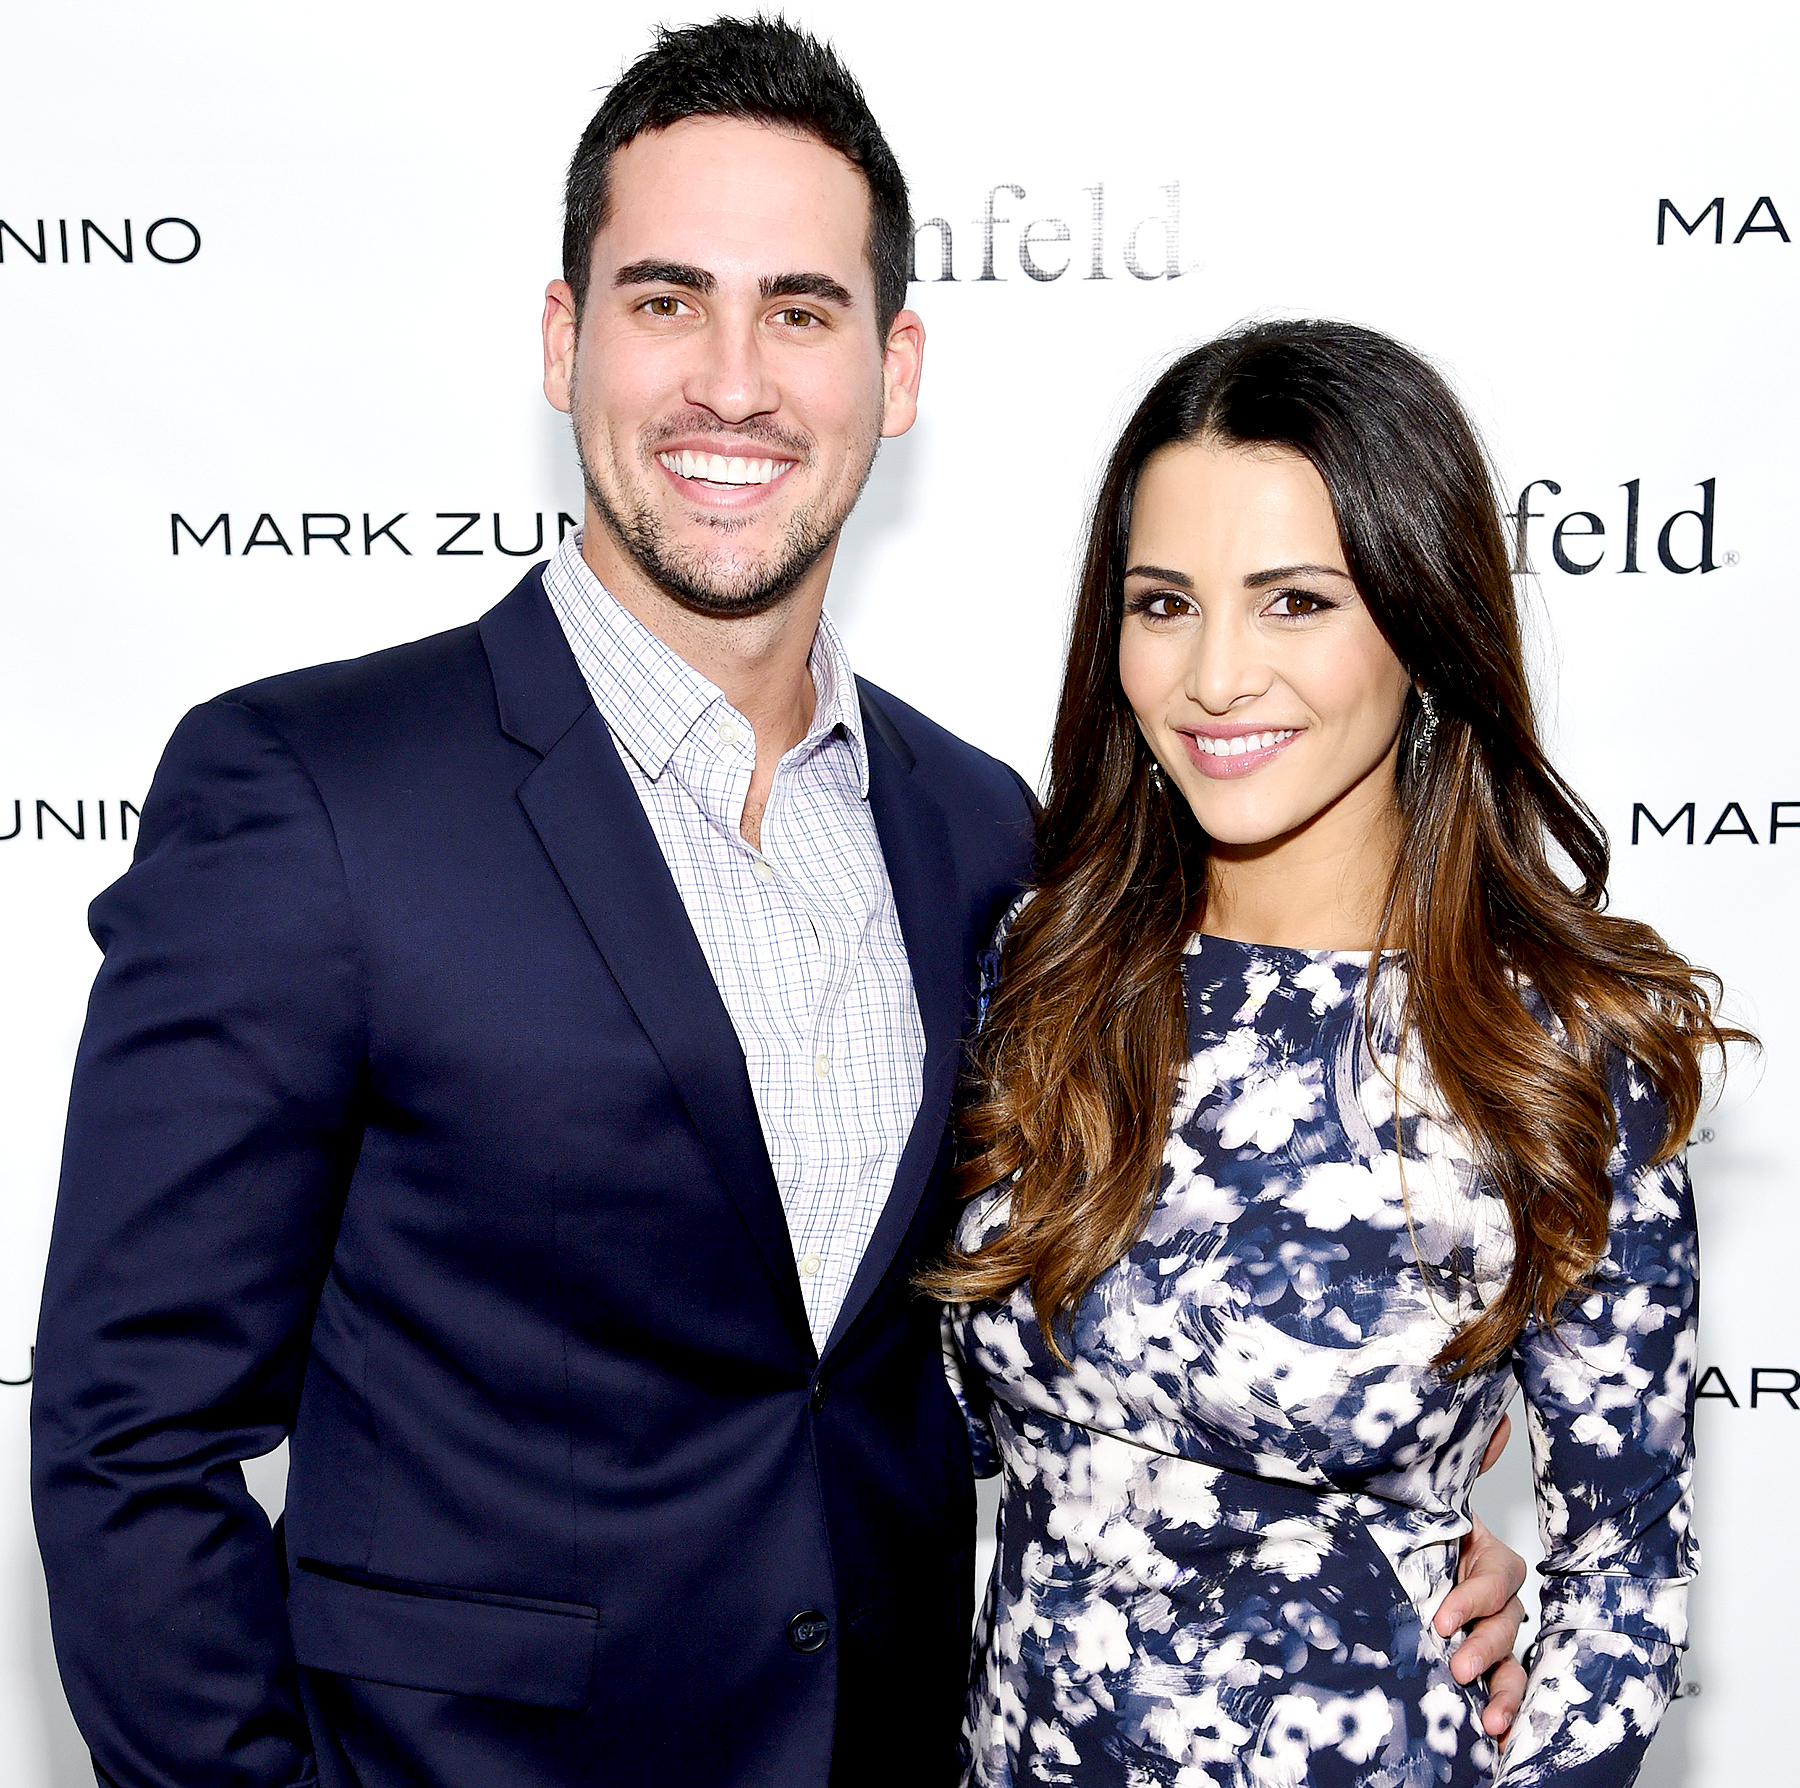 Josh Murray and Andi Dorfman attend The Mark Zunino For Kleinfeld 2015 Runway Show at Kleinfeld in New York City on October 14, 2014.